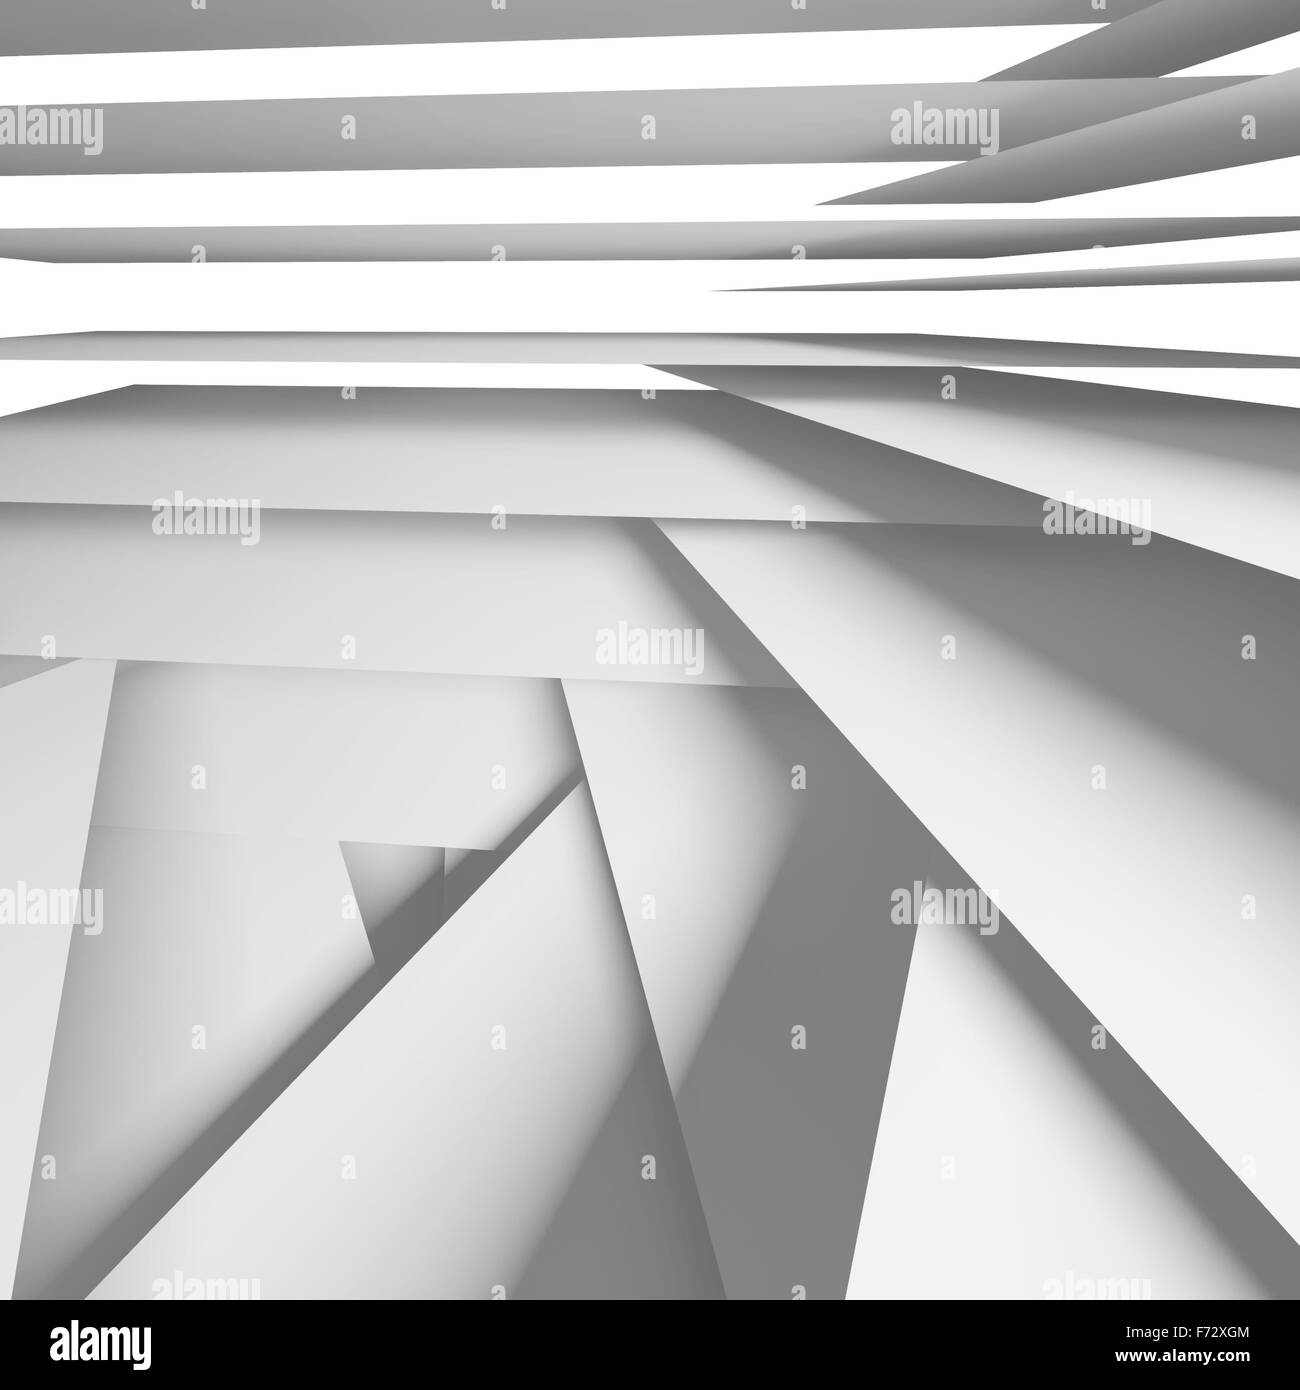 Abstract square digital background with white chaotic multi layered stripes, 3d illustration - Stock Image